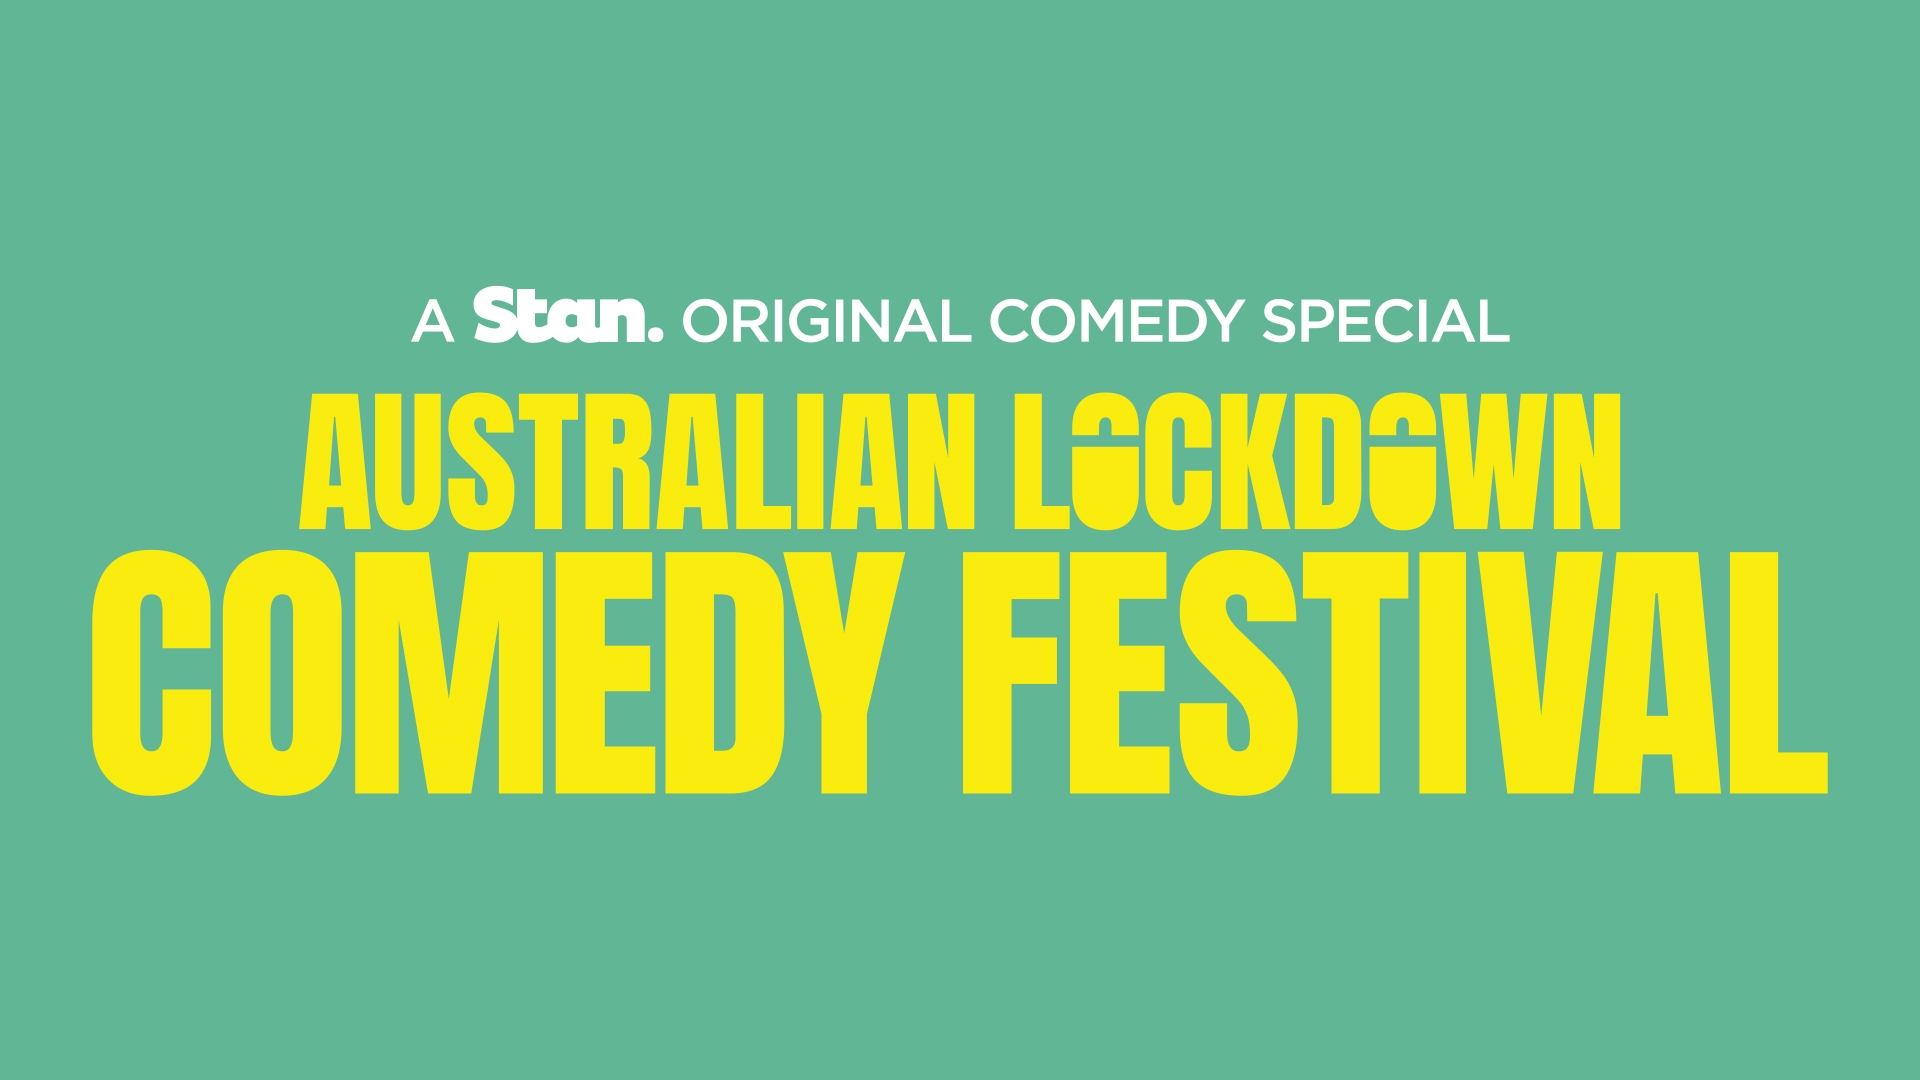 Australian lockdown comedy festival on Stan